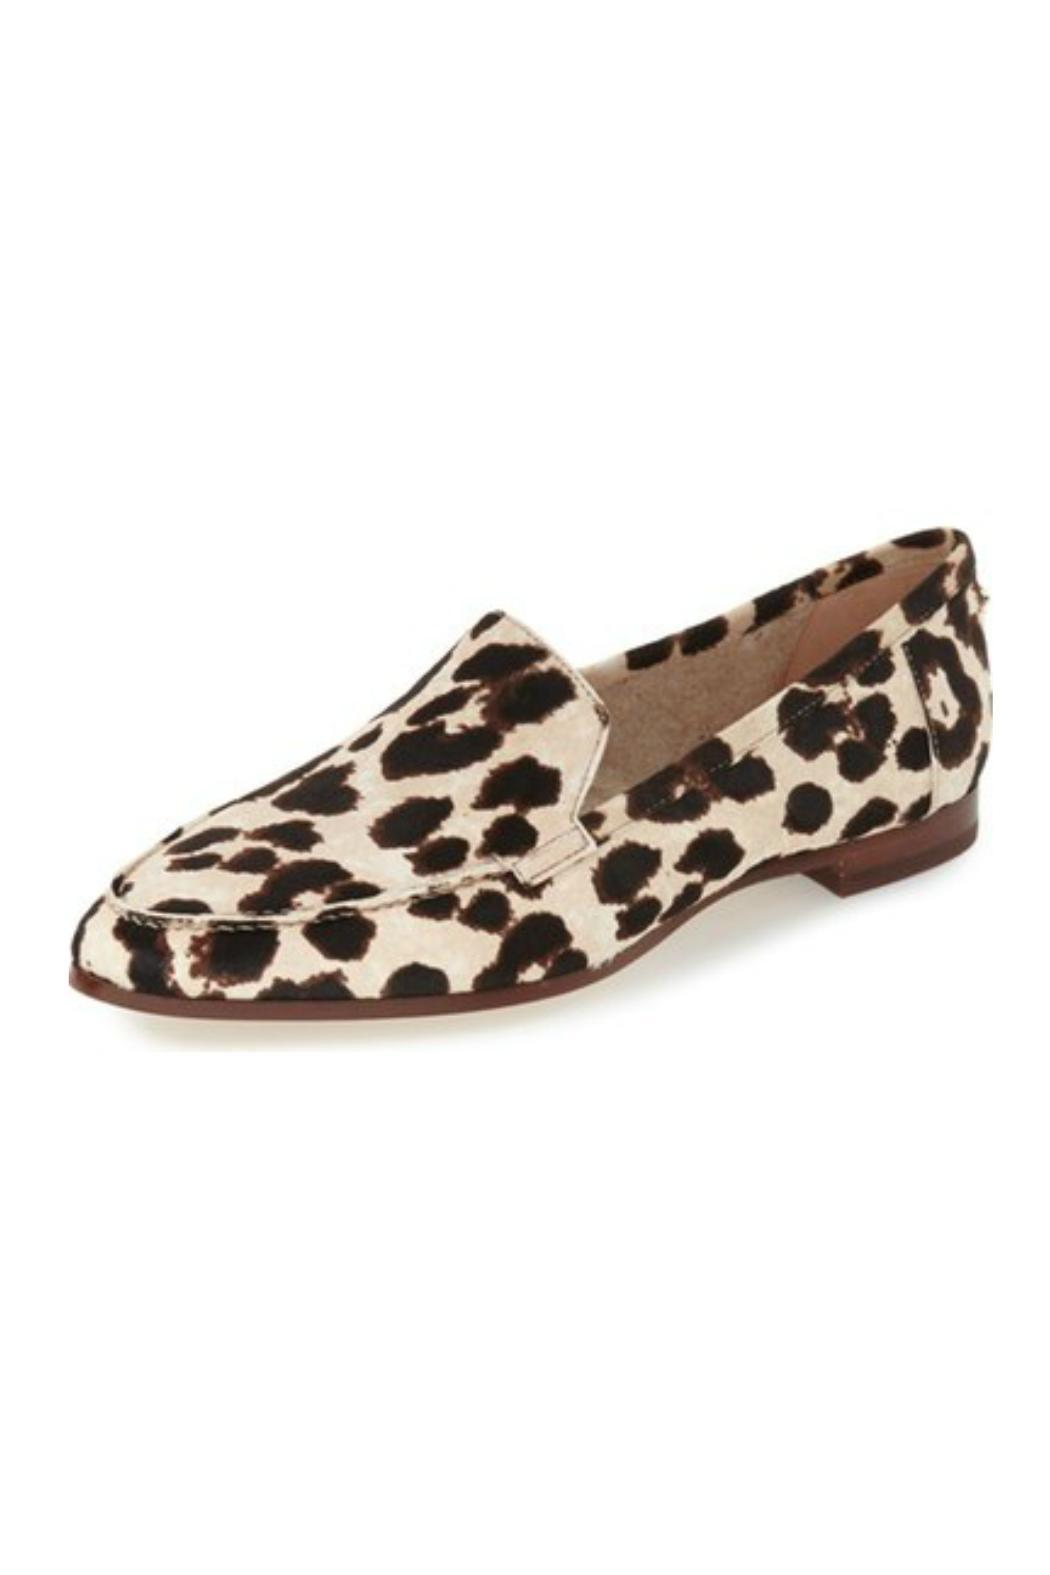 367a1d02a5f6 Kate Spade New York Carima Leopard Loafer from New Hampshire by ...